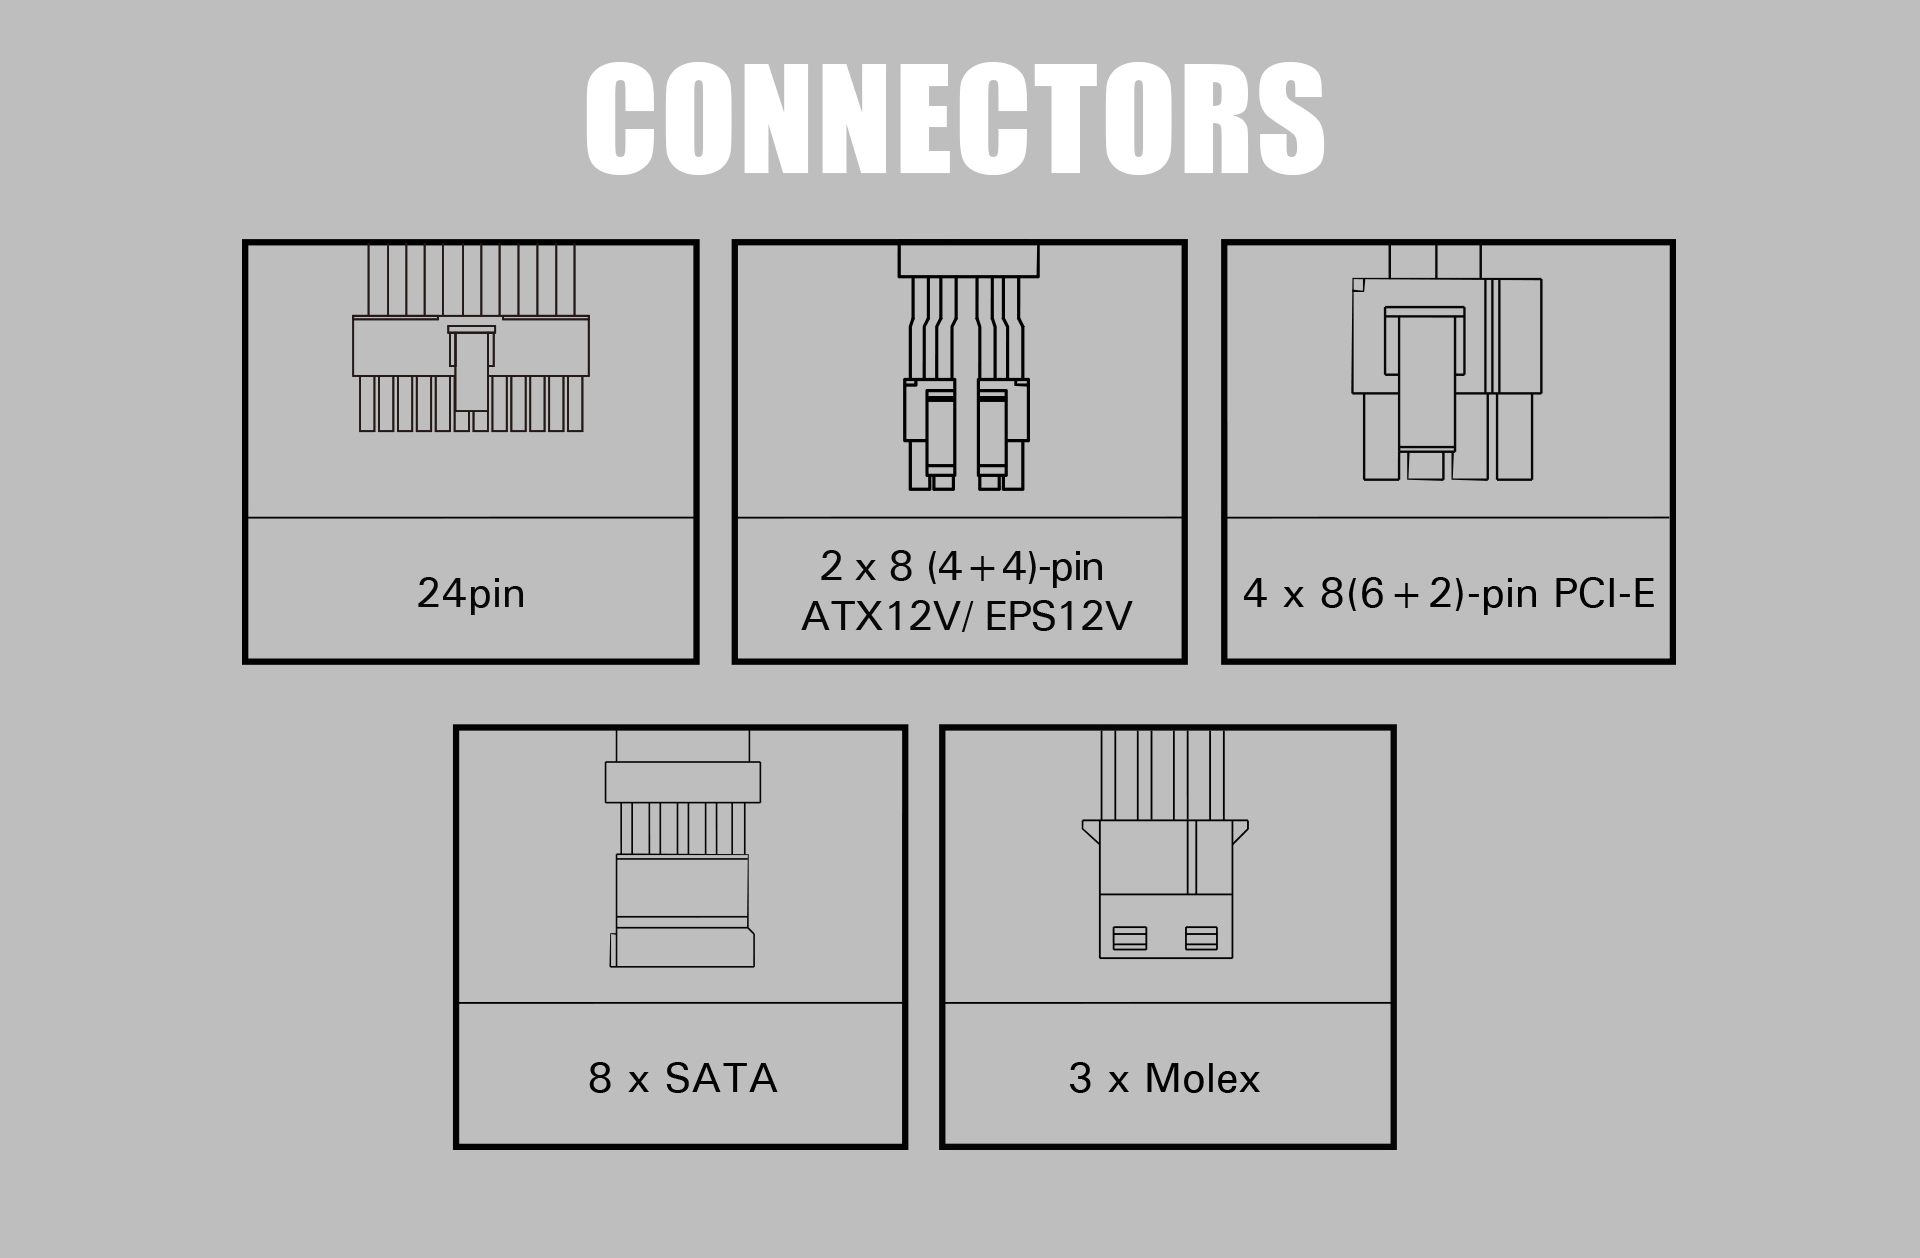 Diagrams for the Antec NeoECO 750 PSU Cable Connectors: 24-pin, two 8 (4 + 4)-pin ATX12V/EPS12V, four 8(6 + 2)-pin PCI-E, eight SATA and three Molex connectors